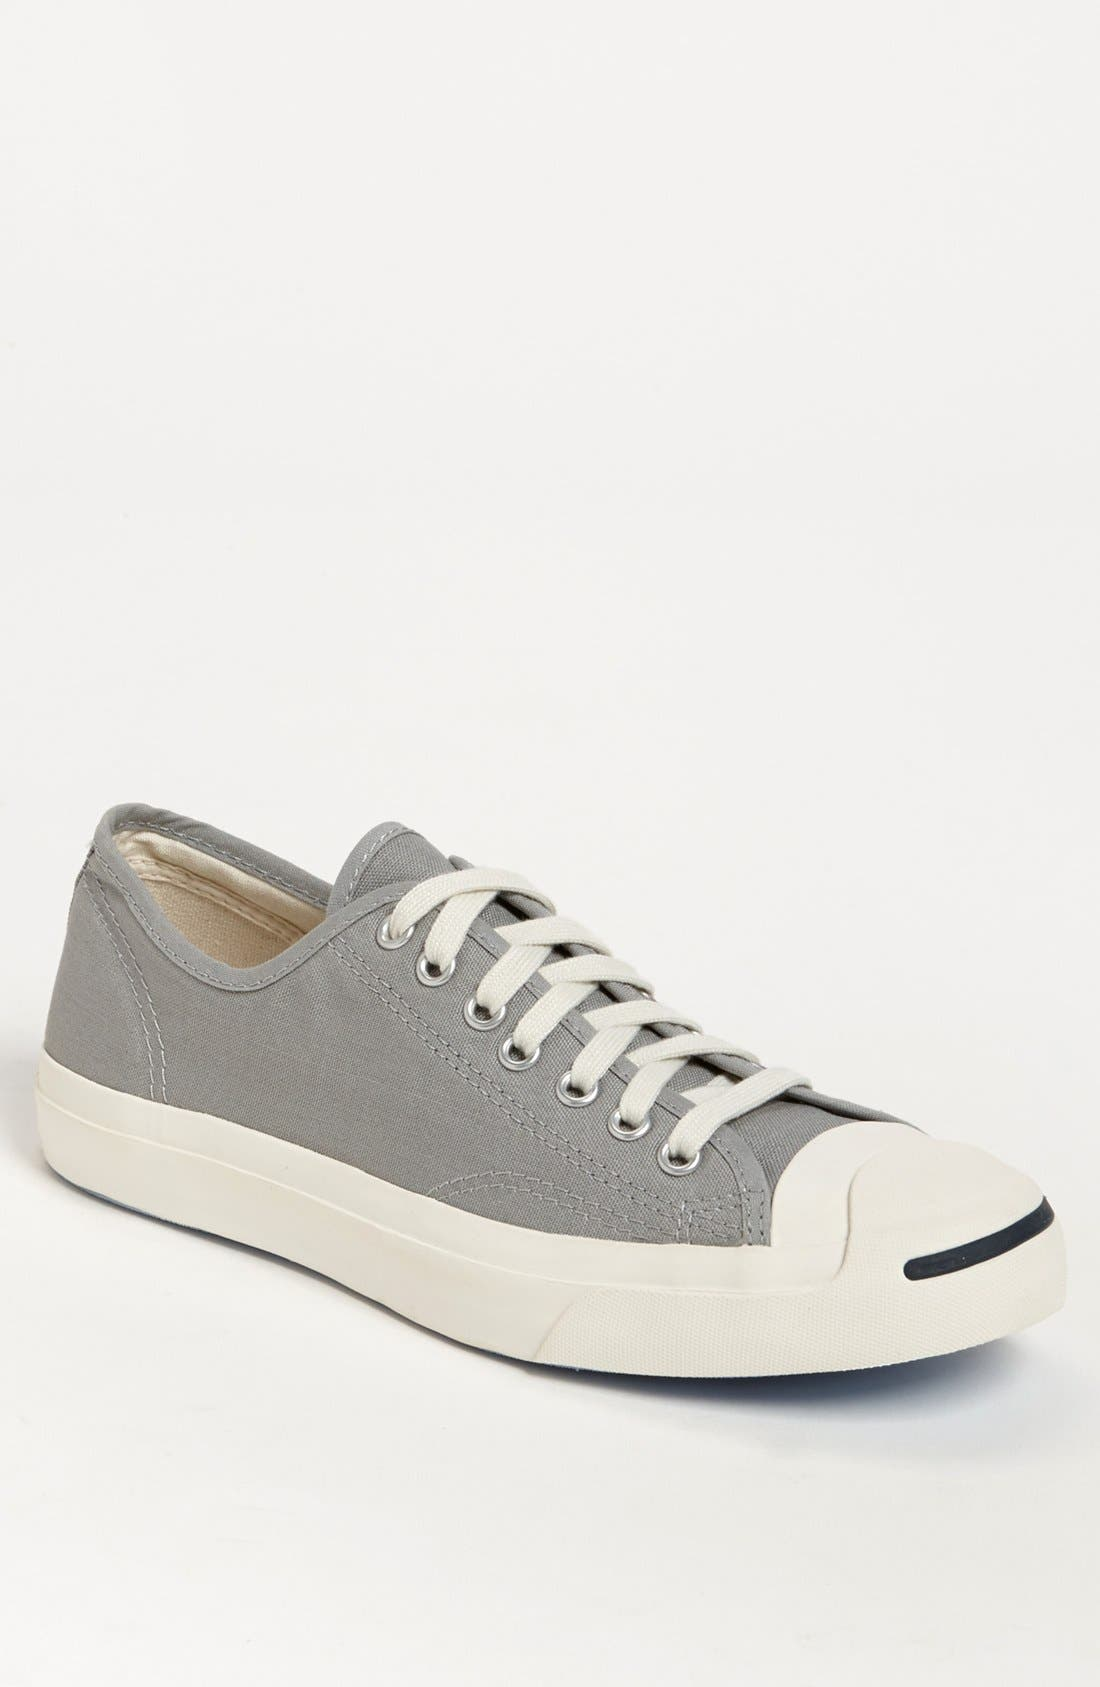 Alternate Image 1 Selected - Converse 'Jack Purcell LTT' Sneaker (Men)